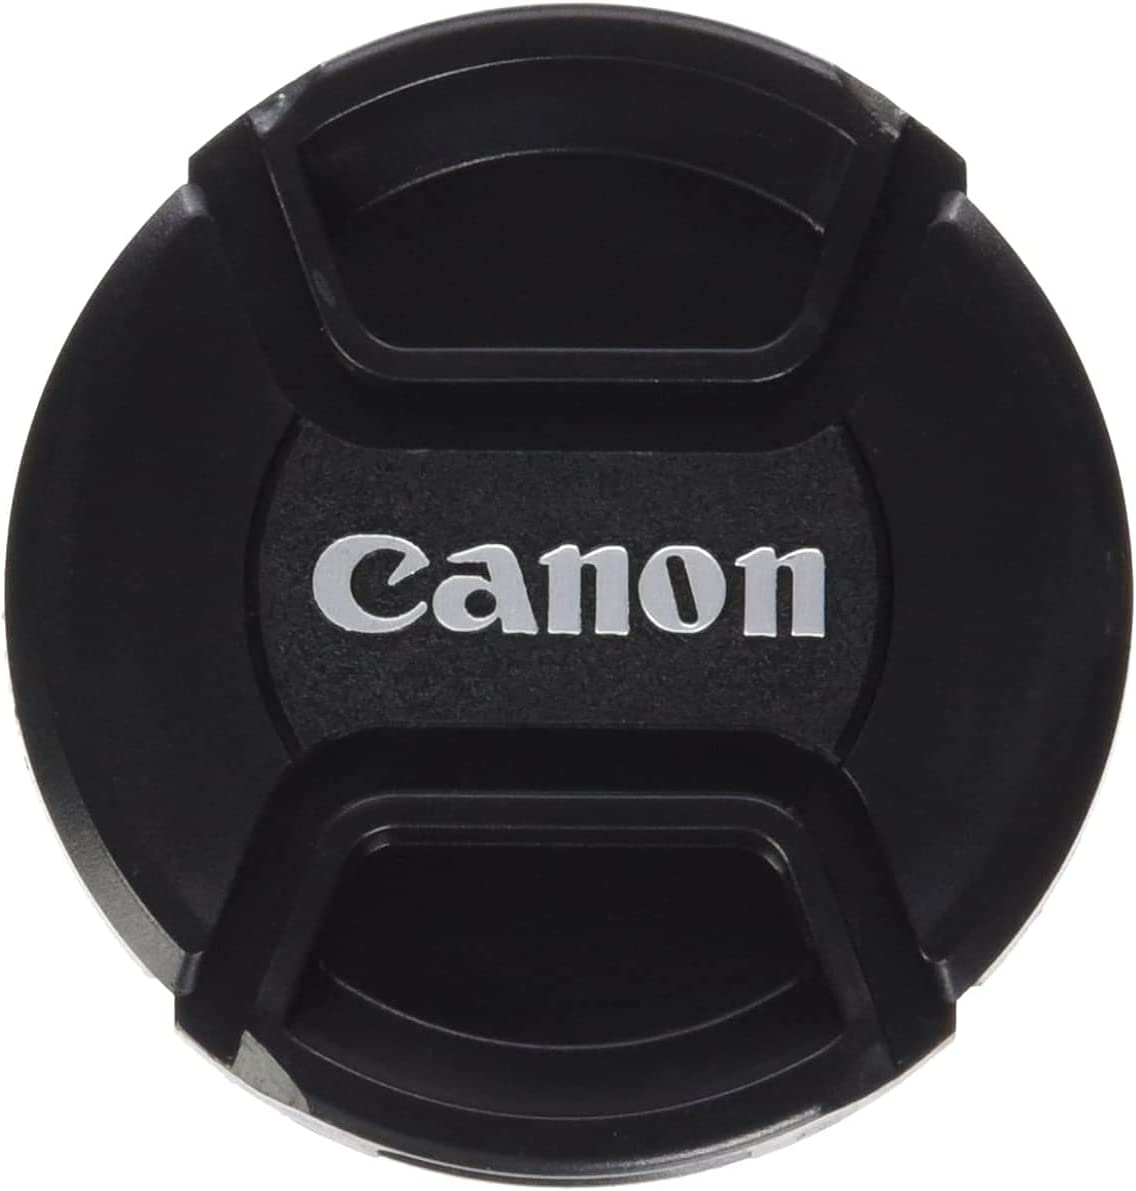 SPEEX 58mm Rare Lens Cap for Replaces Genuine Free Shipping II Canon E-58 2Pcs